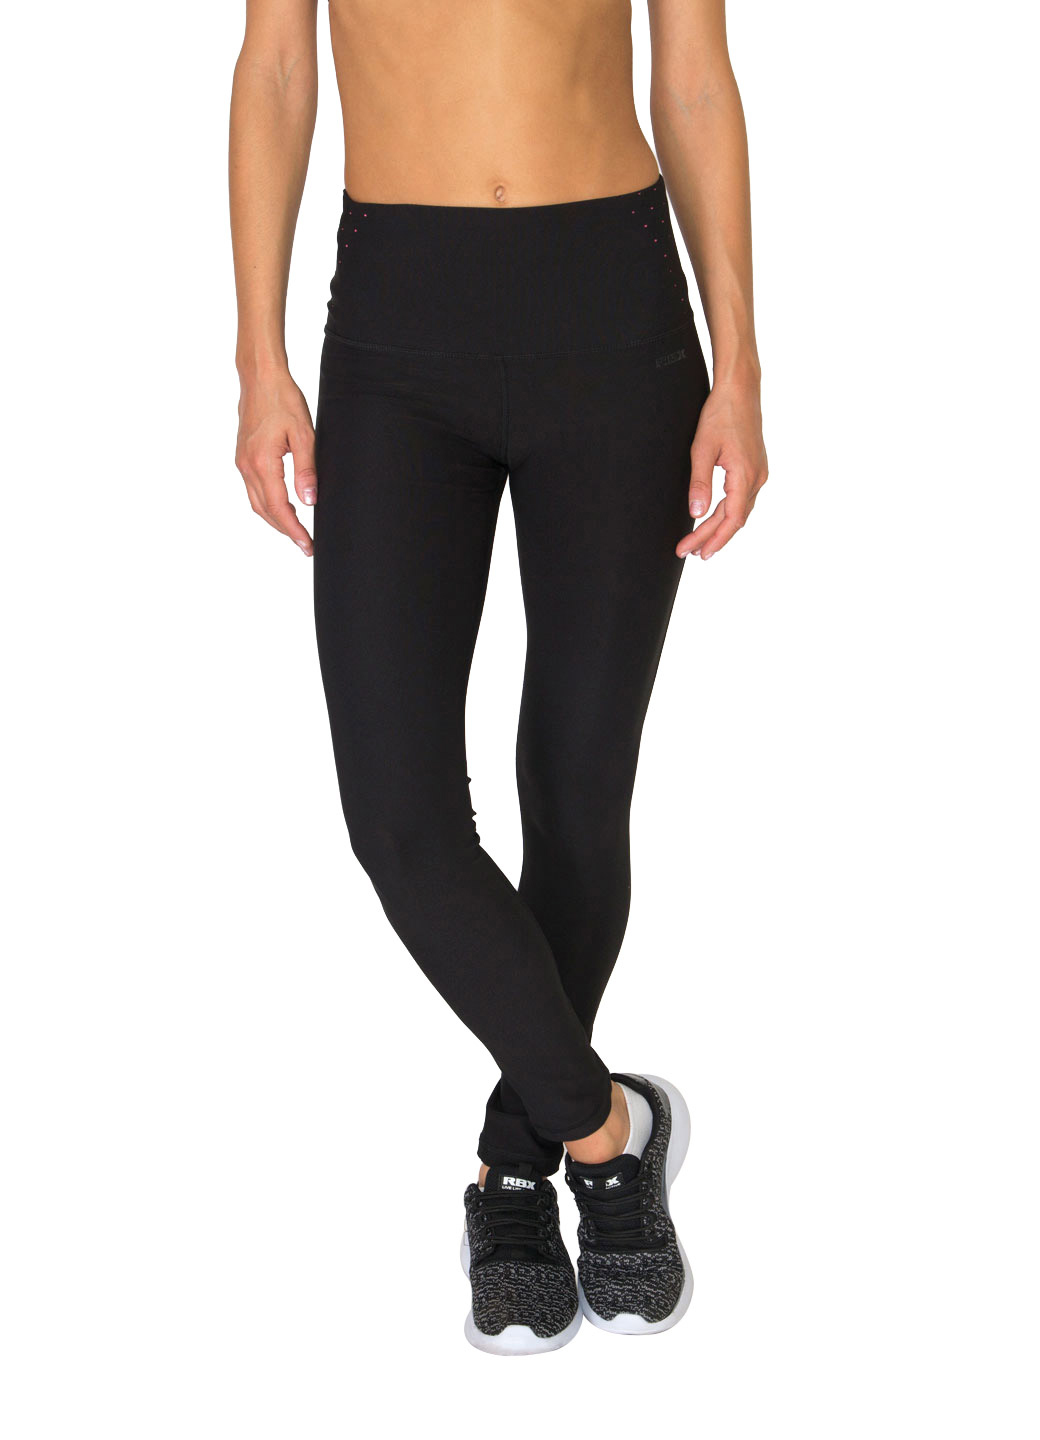 Women's Active Full Length Legging